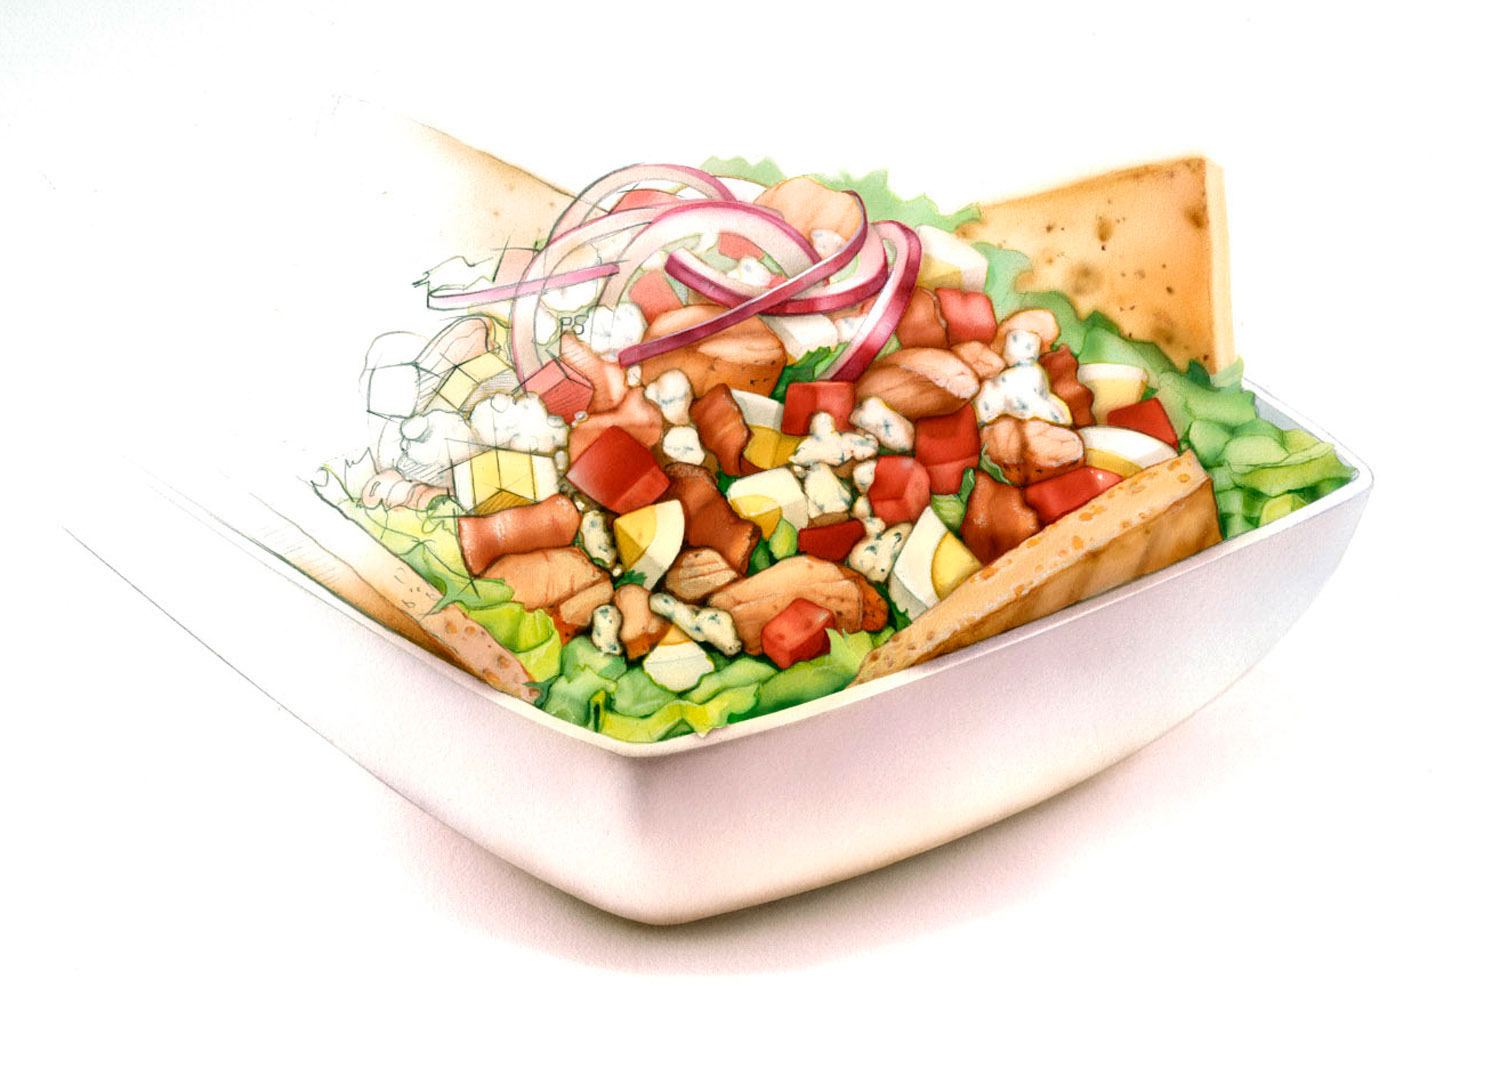 illustration-Food_Quiznos salad-Bonnie Hofkin